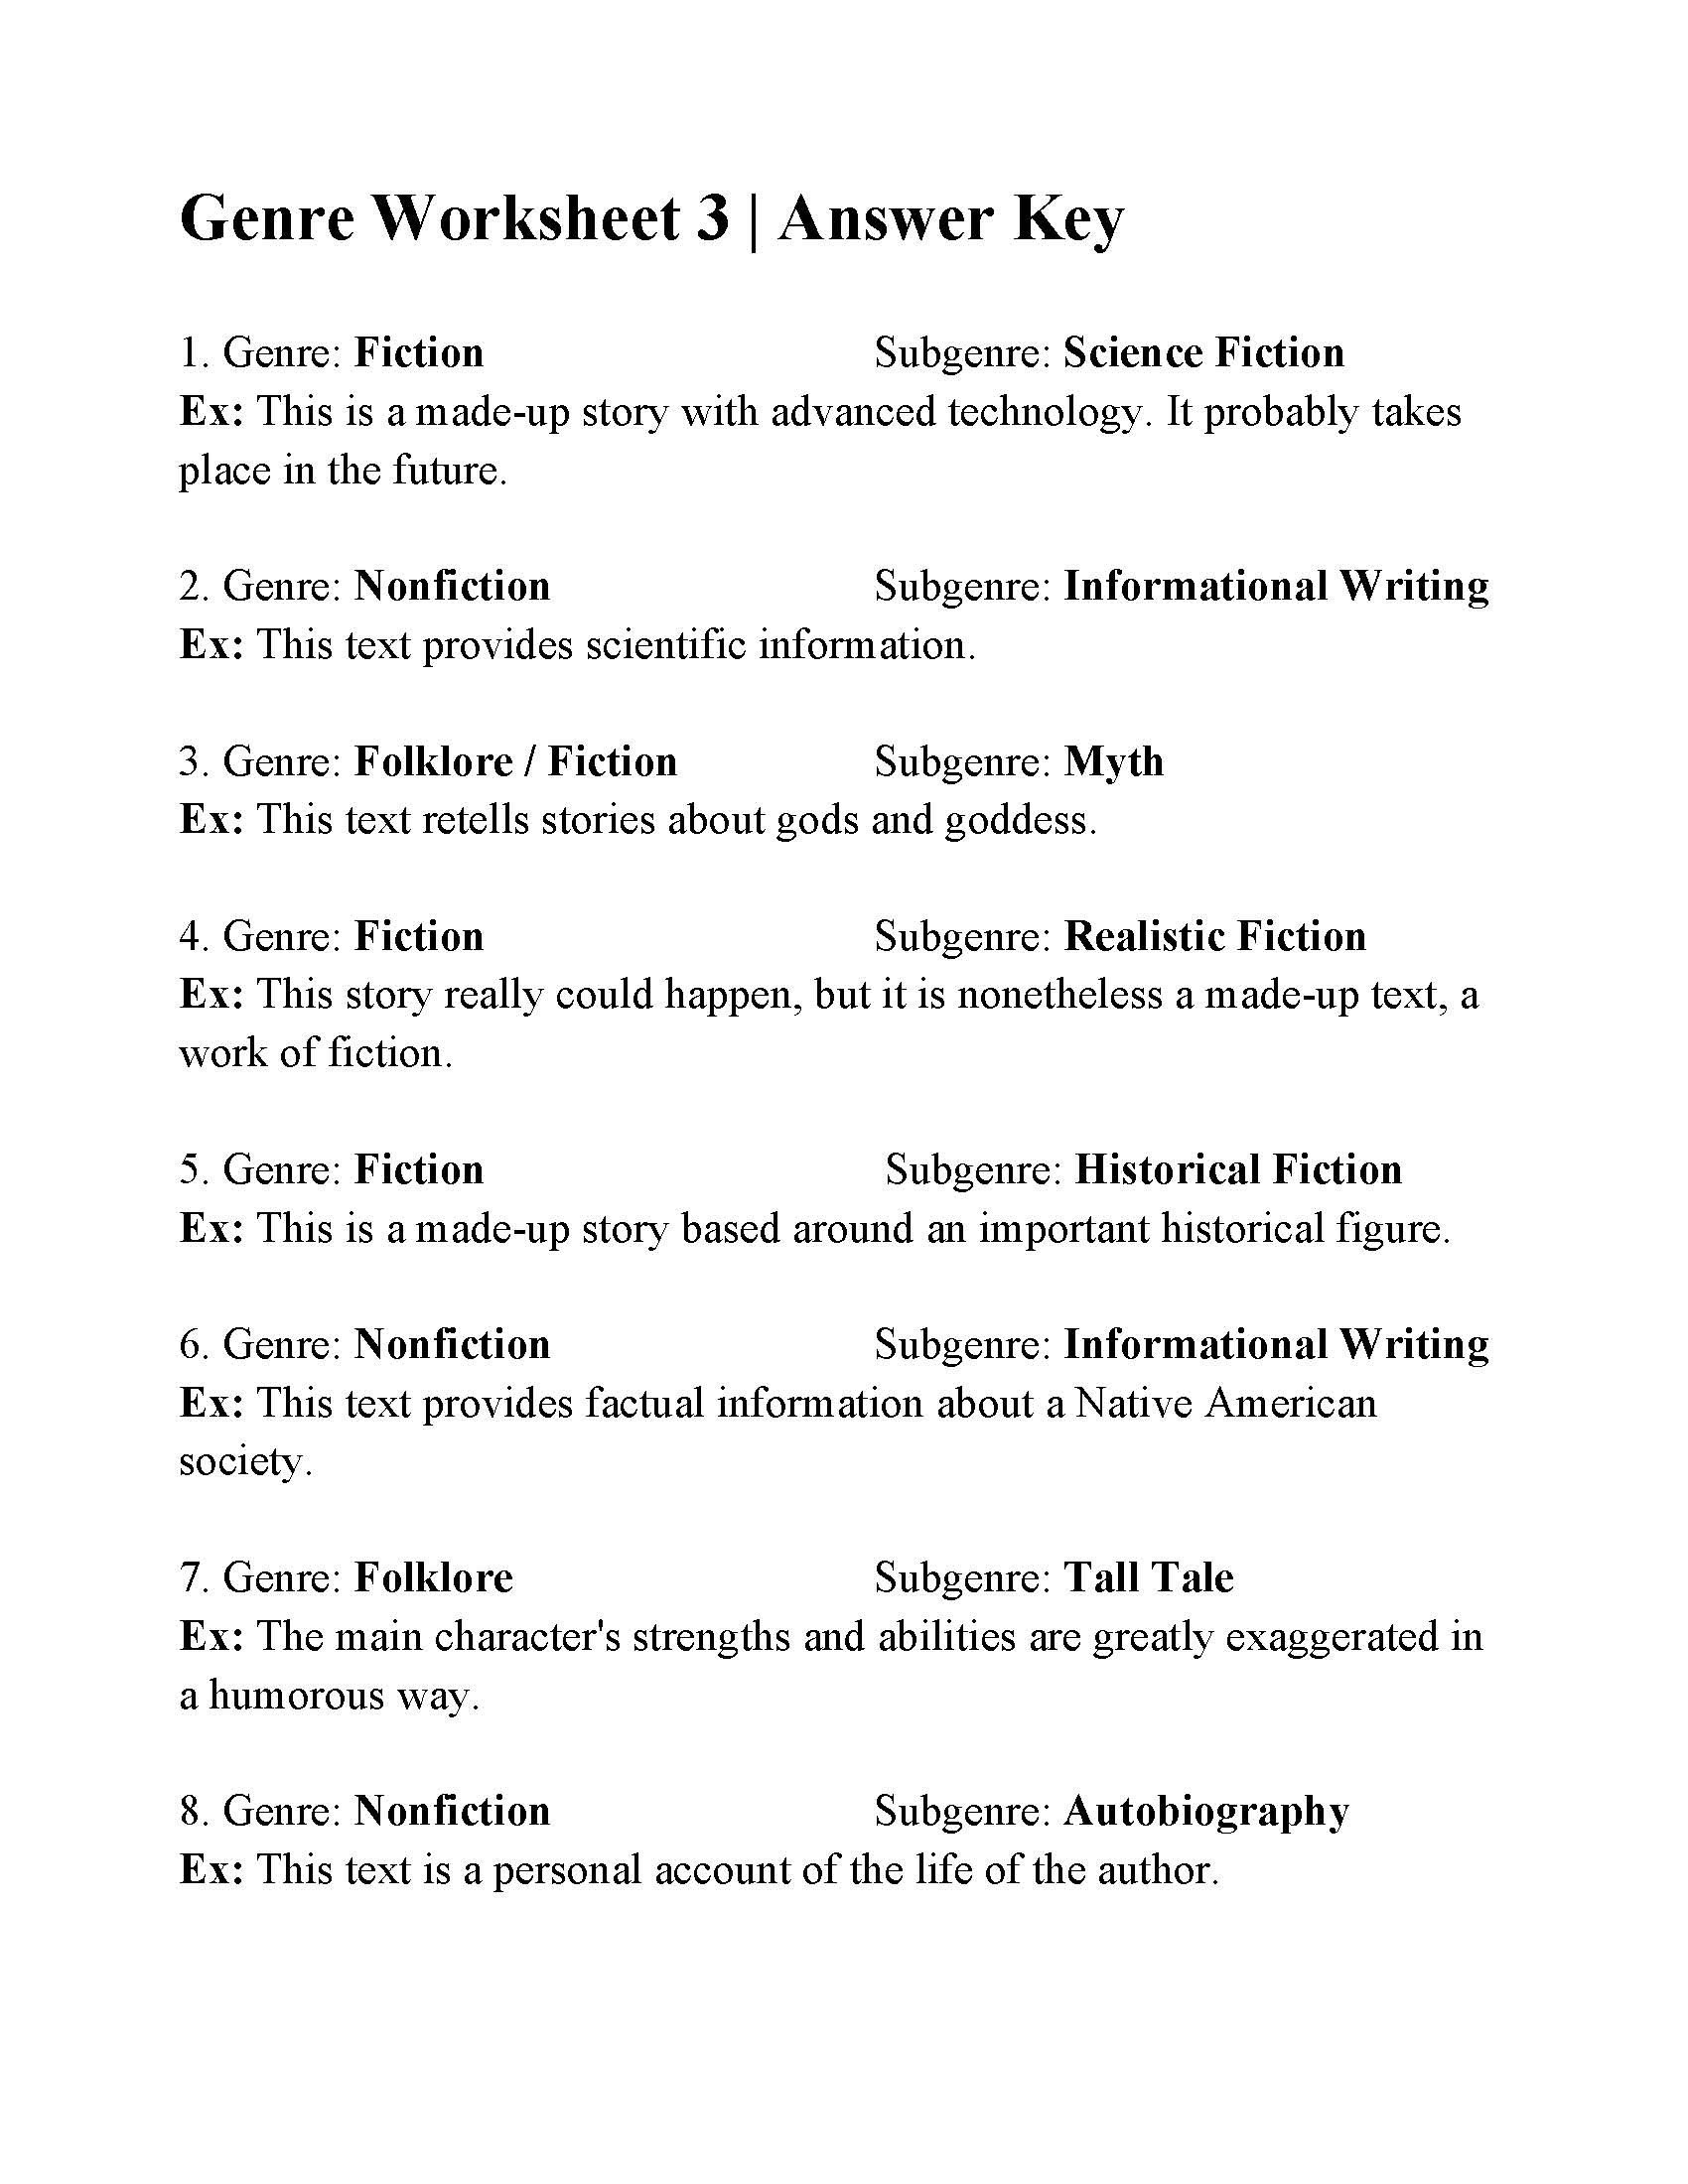 Teaching Genre Worksheets Genres Literature Worksheets